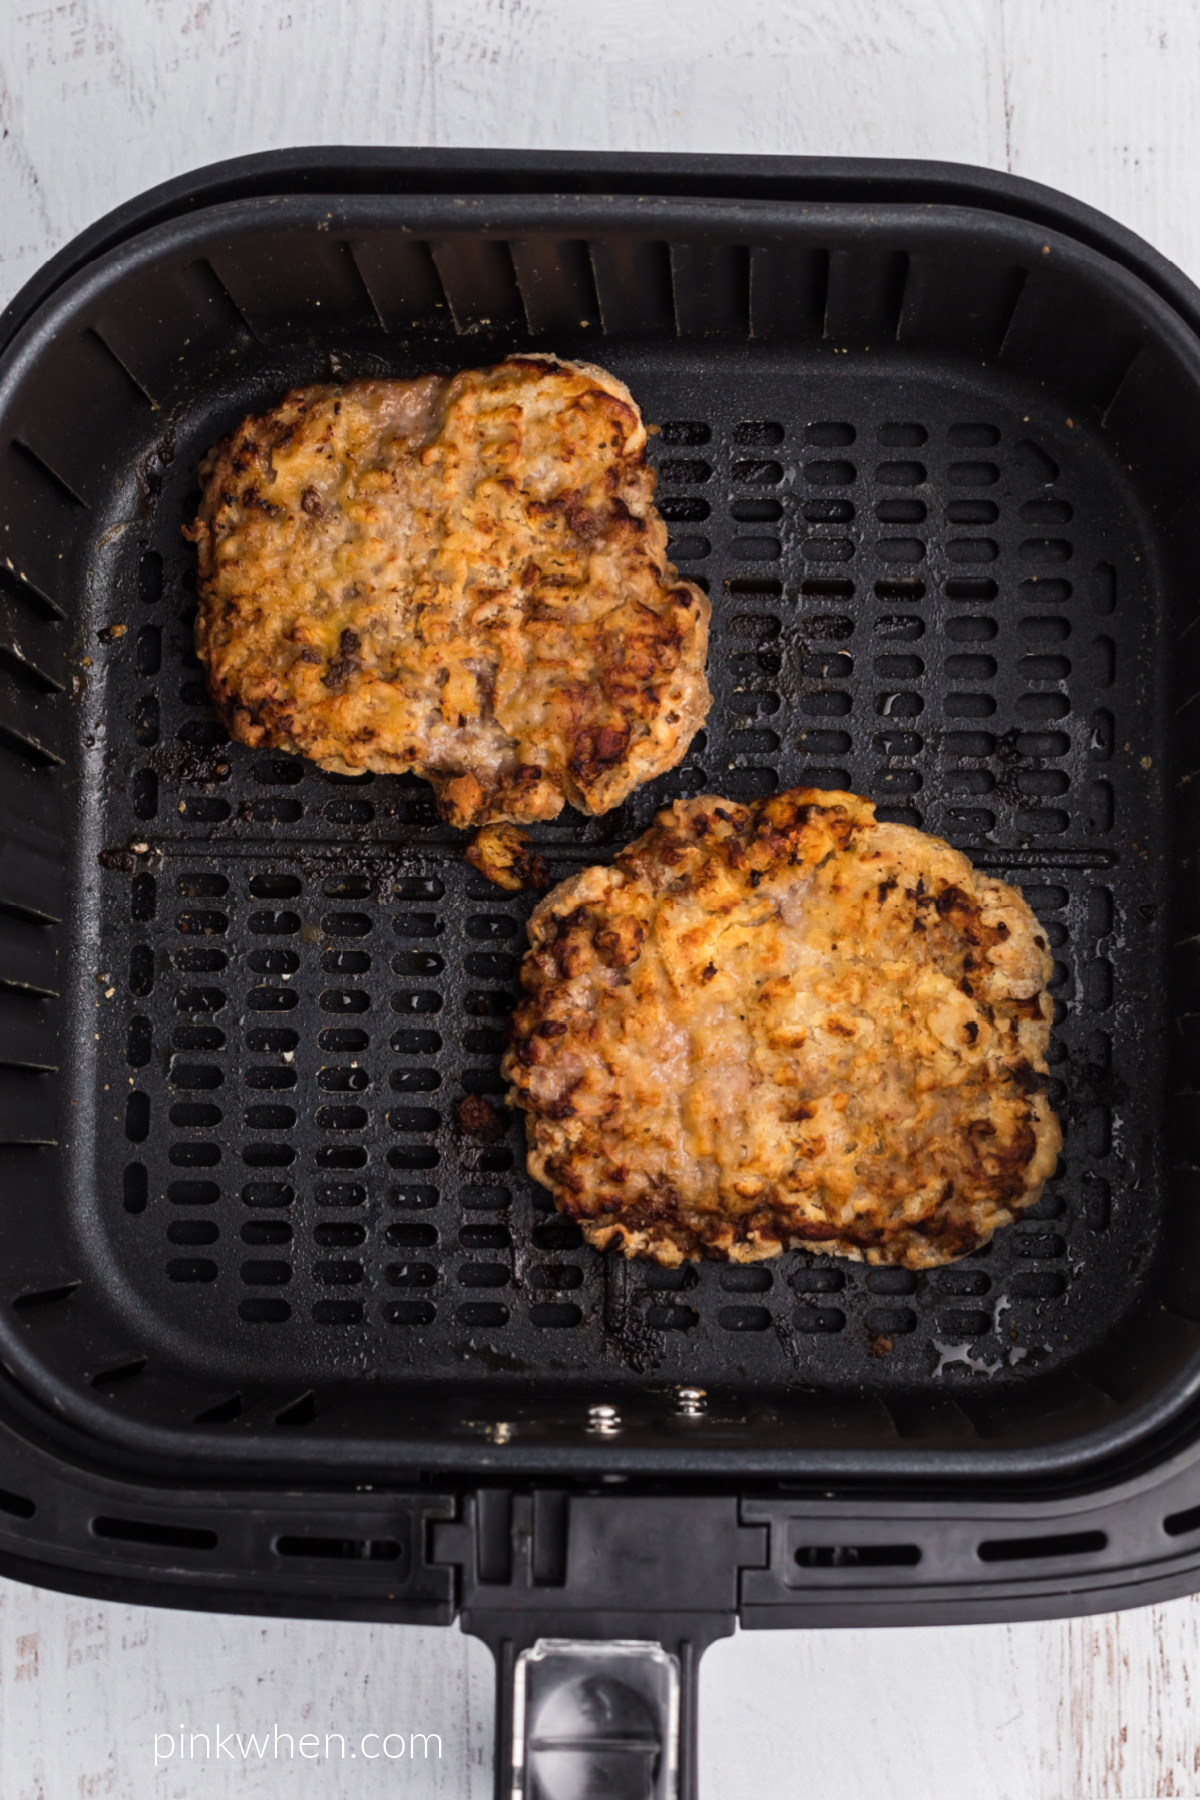 Chicken Fried Steaks fully cooked in the basket of the air fryer.